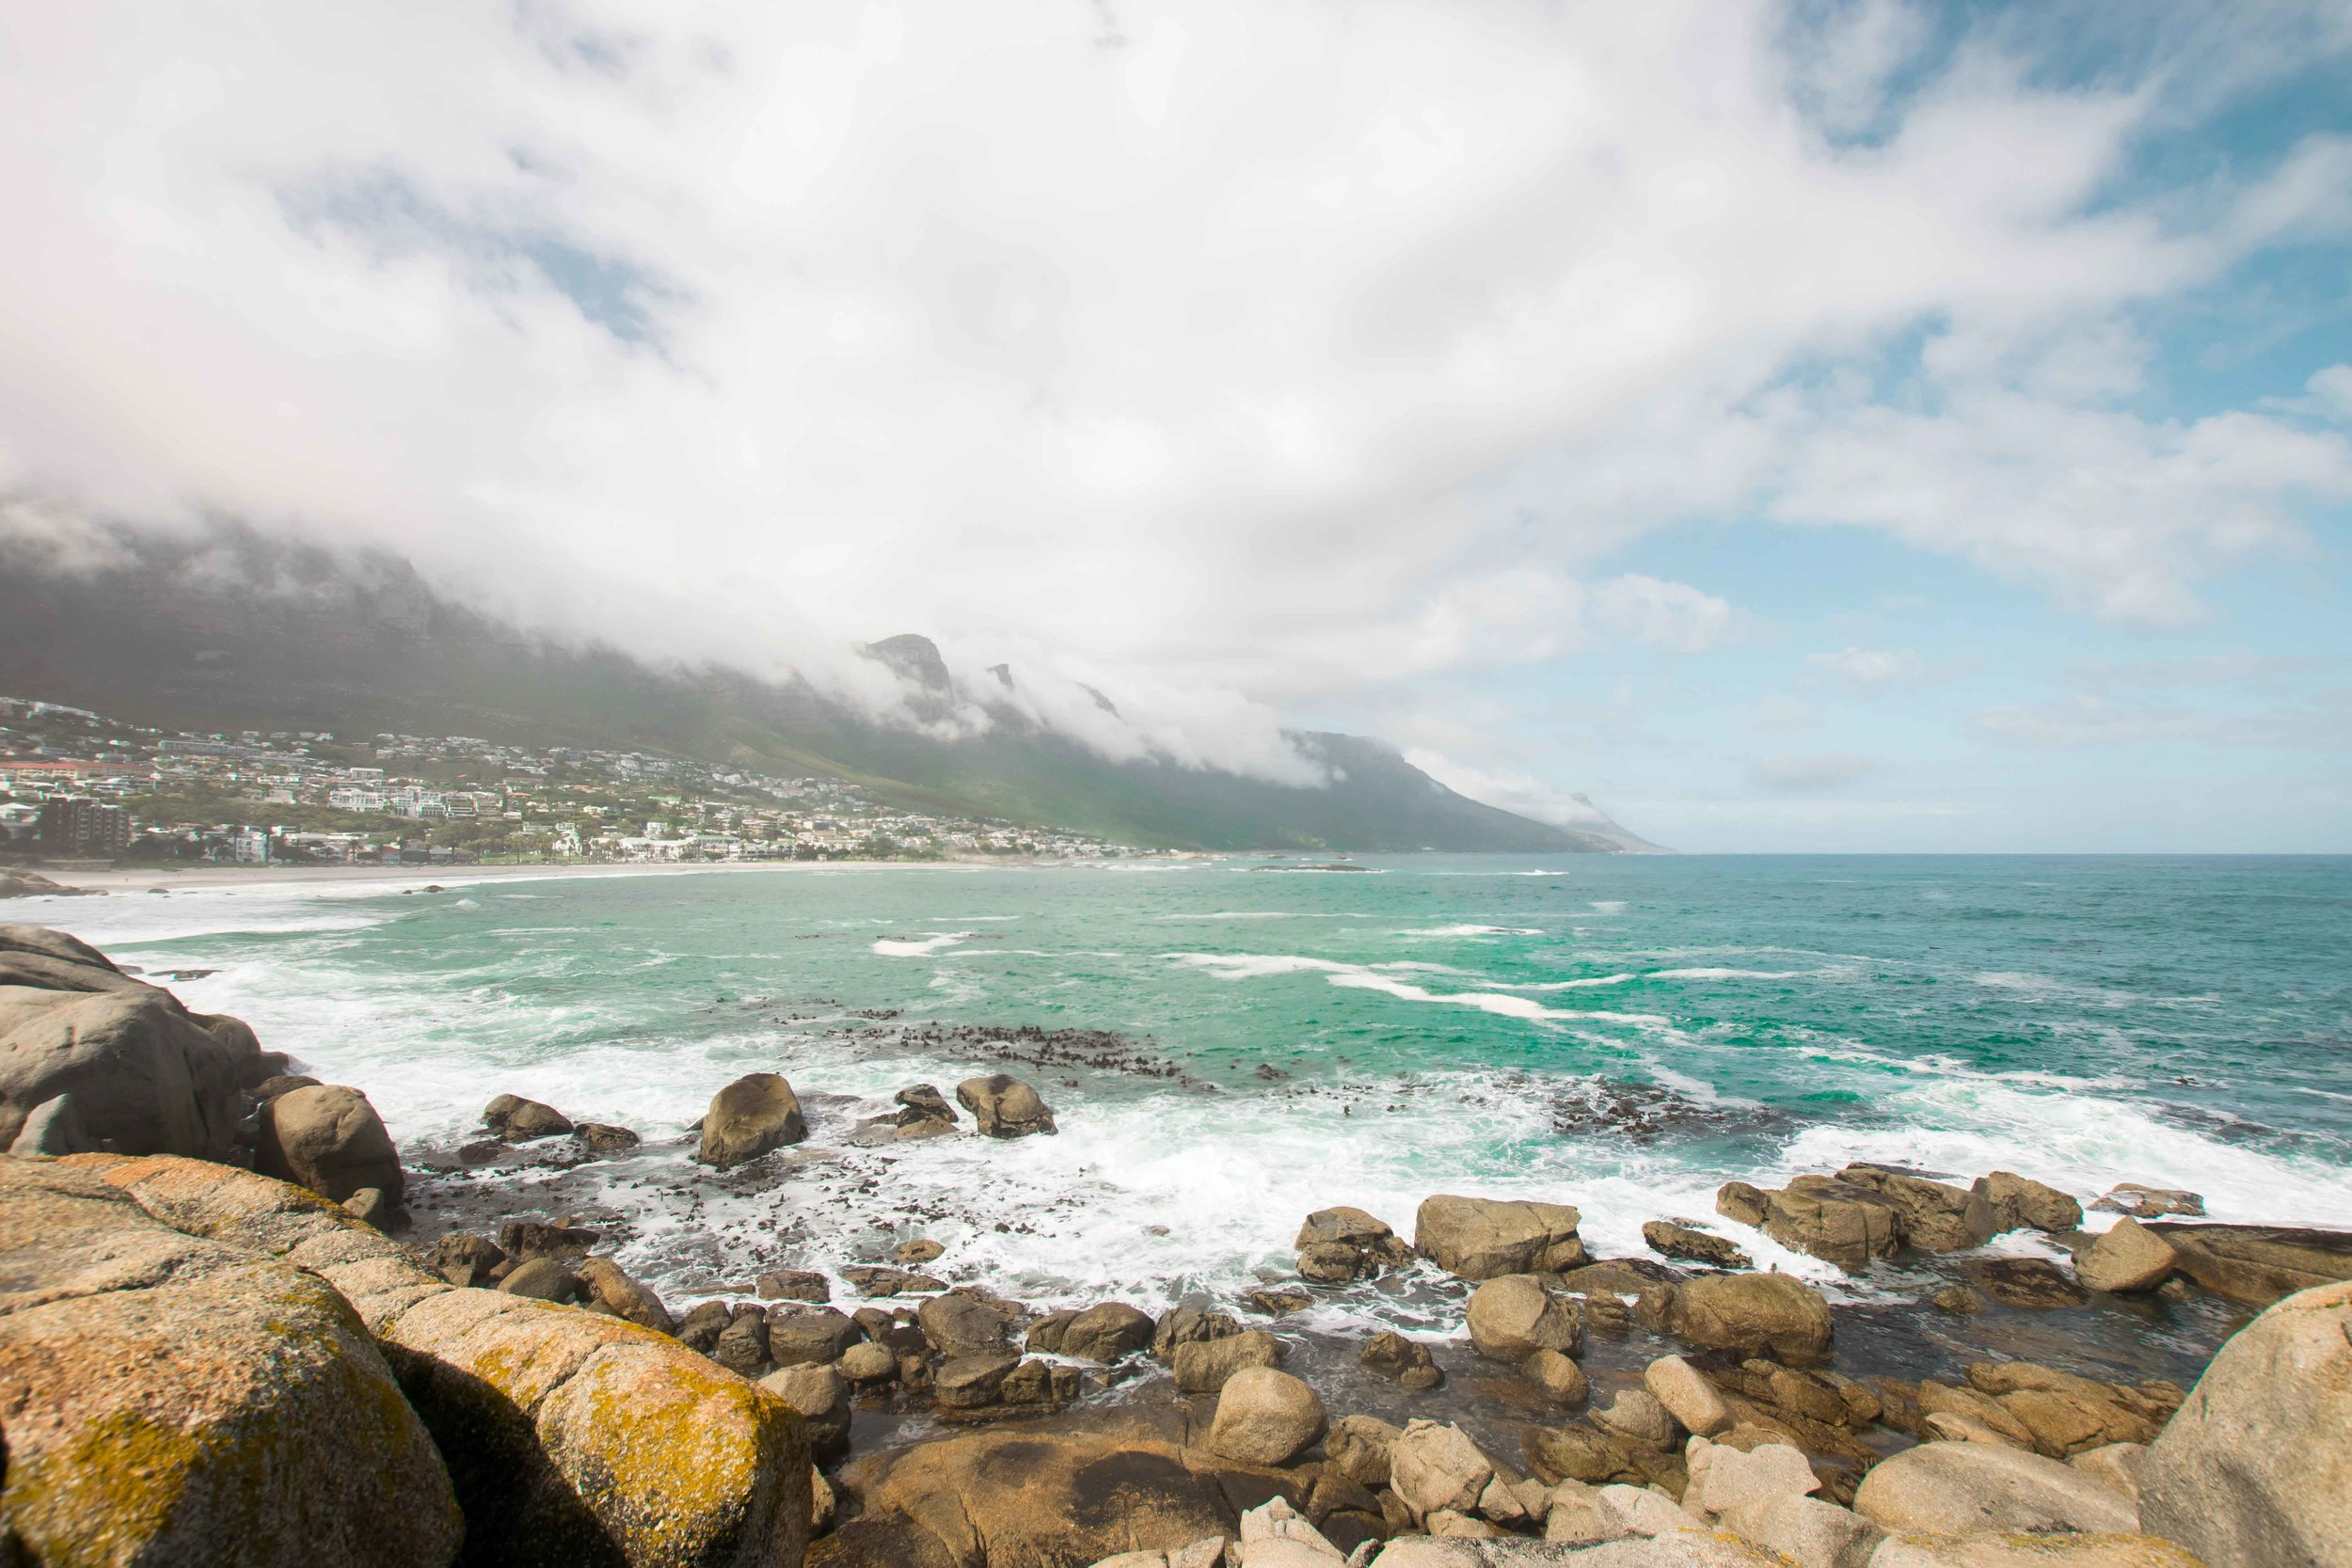 Check out as many of Cape Town's awesome beaches as you can. They are all beautiful!